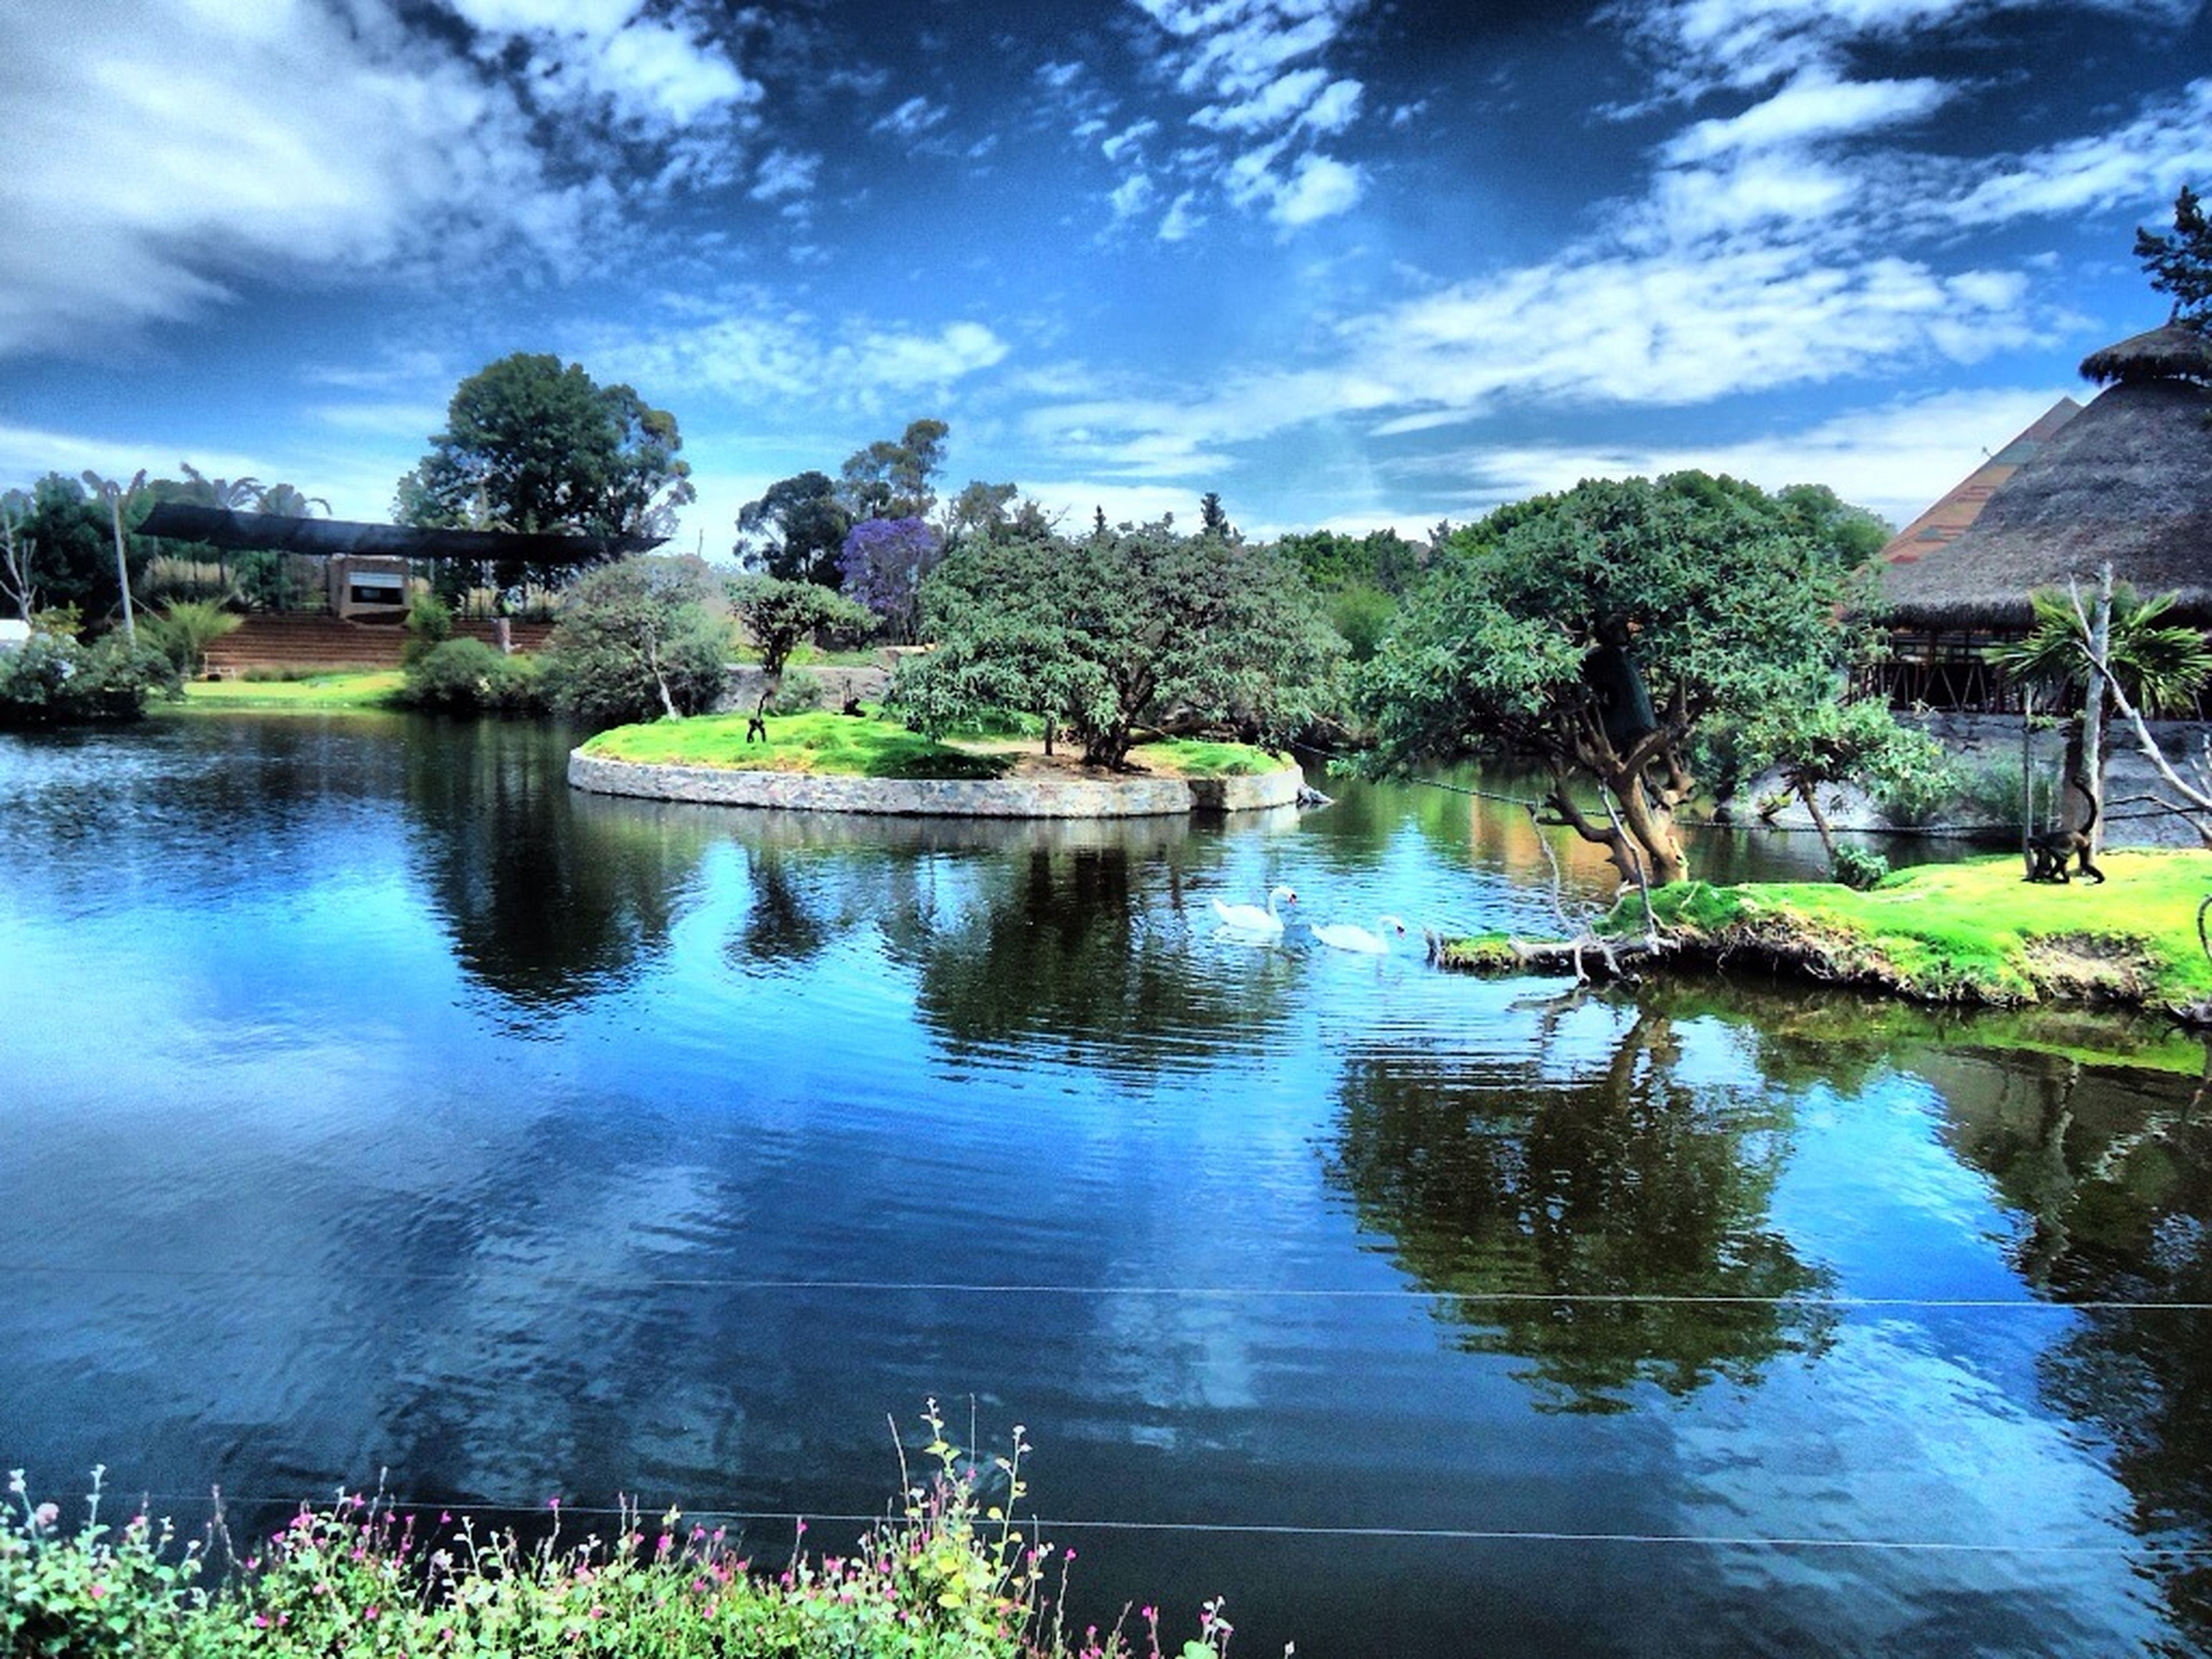 tree, water, sky, reflection, building exterior, architecture, built structure, lake, cloud - sky, cloud, green color, growth, tranquility, tranquil scene, nature, pond, house, beauty in nature, scenics, river